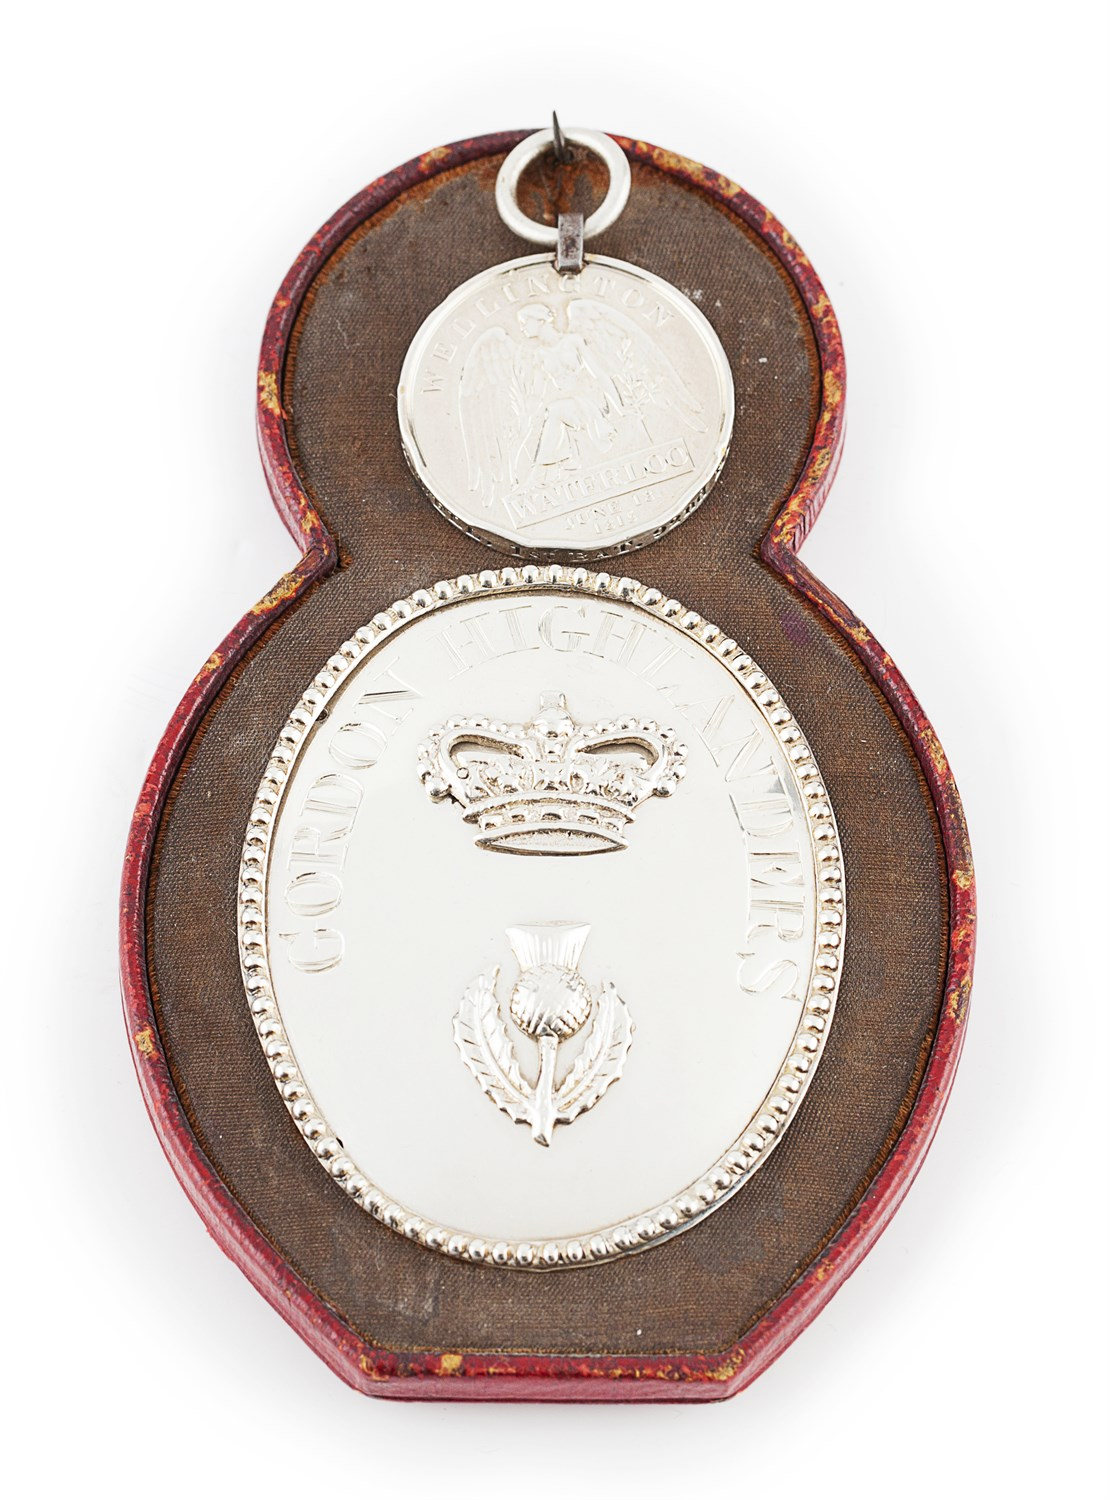 Lot 645-WATERLOO MEDAL